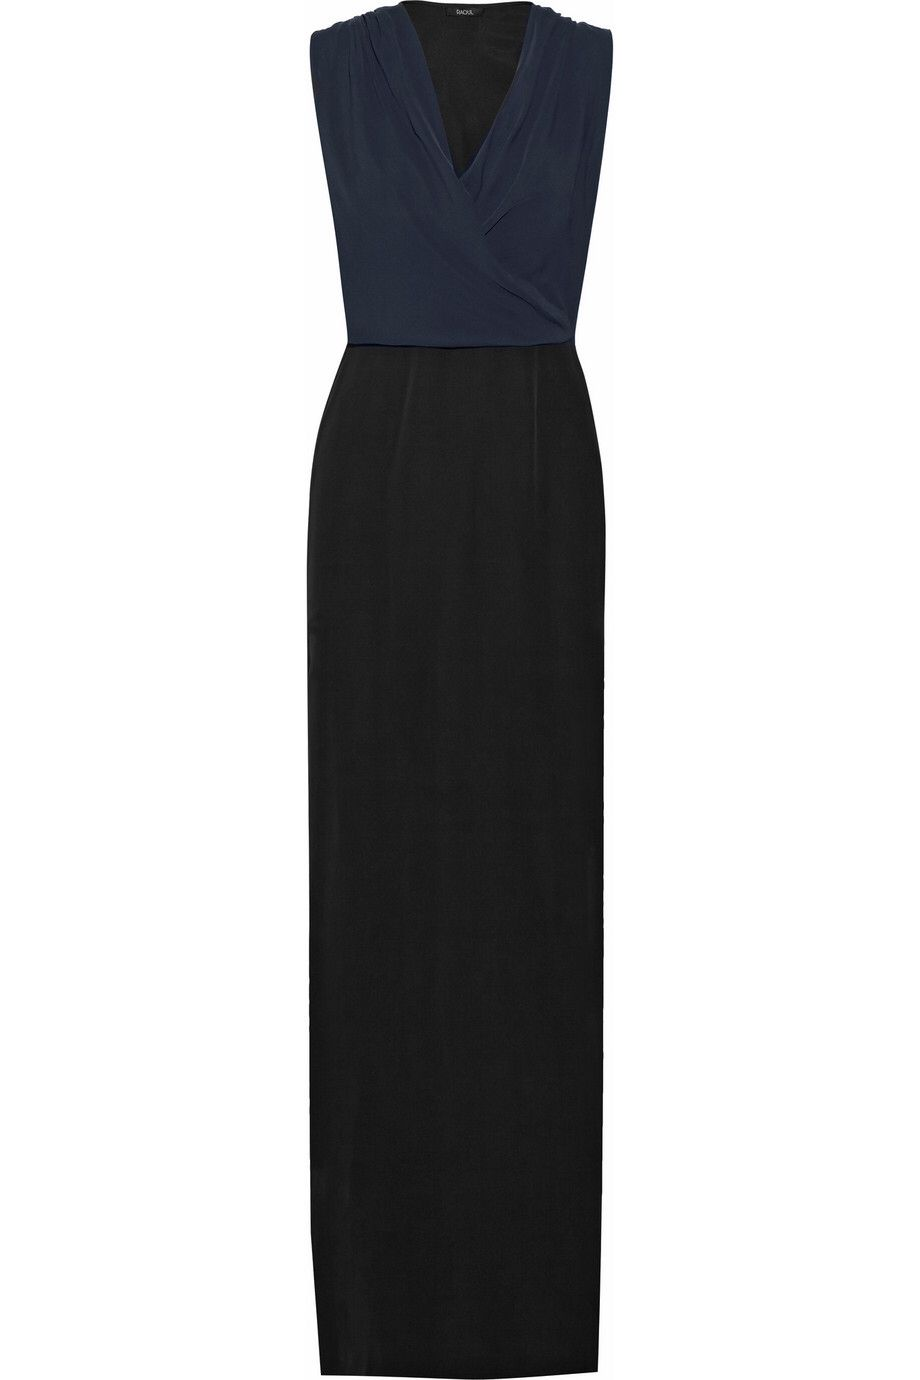 RAOUL Gina draped silk gown £222.69 http://www.theoutnet.com/products/559980